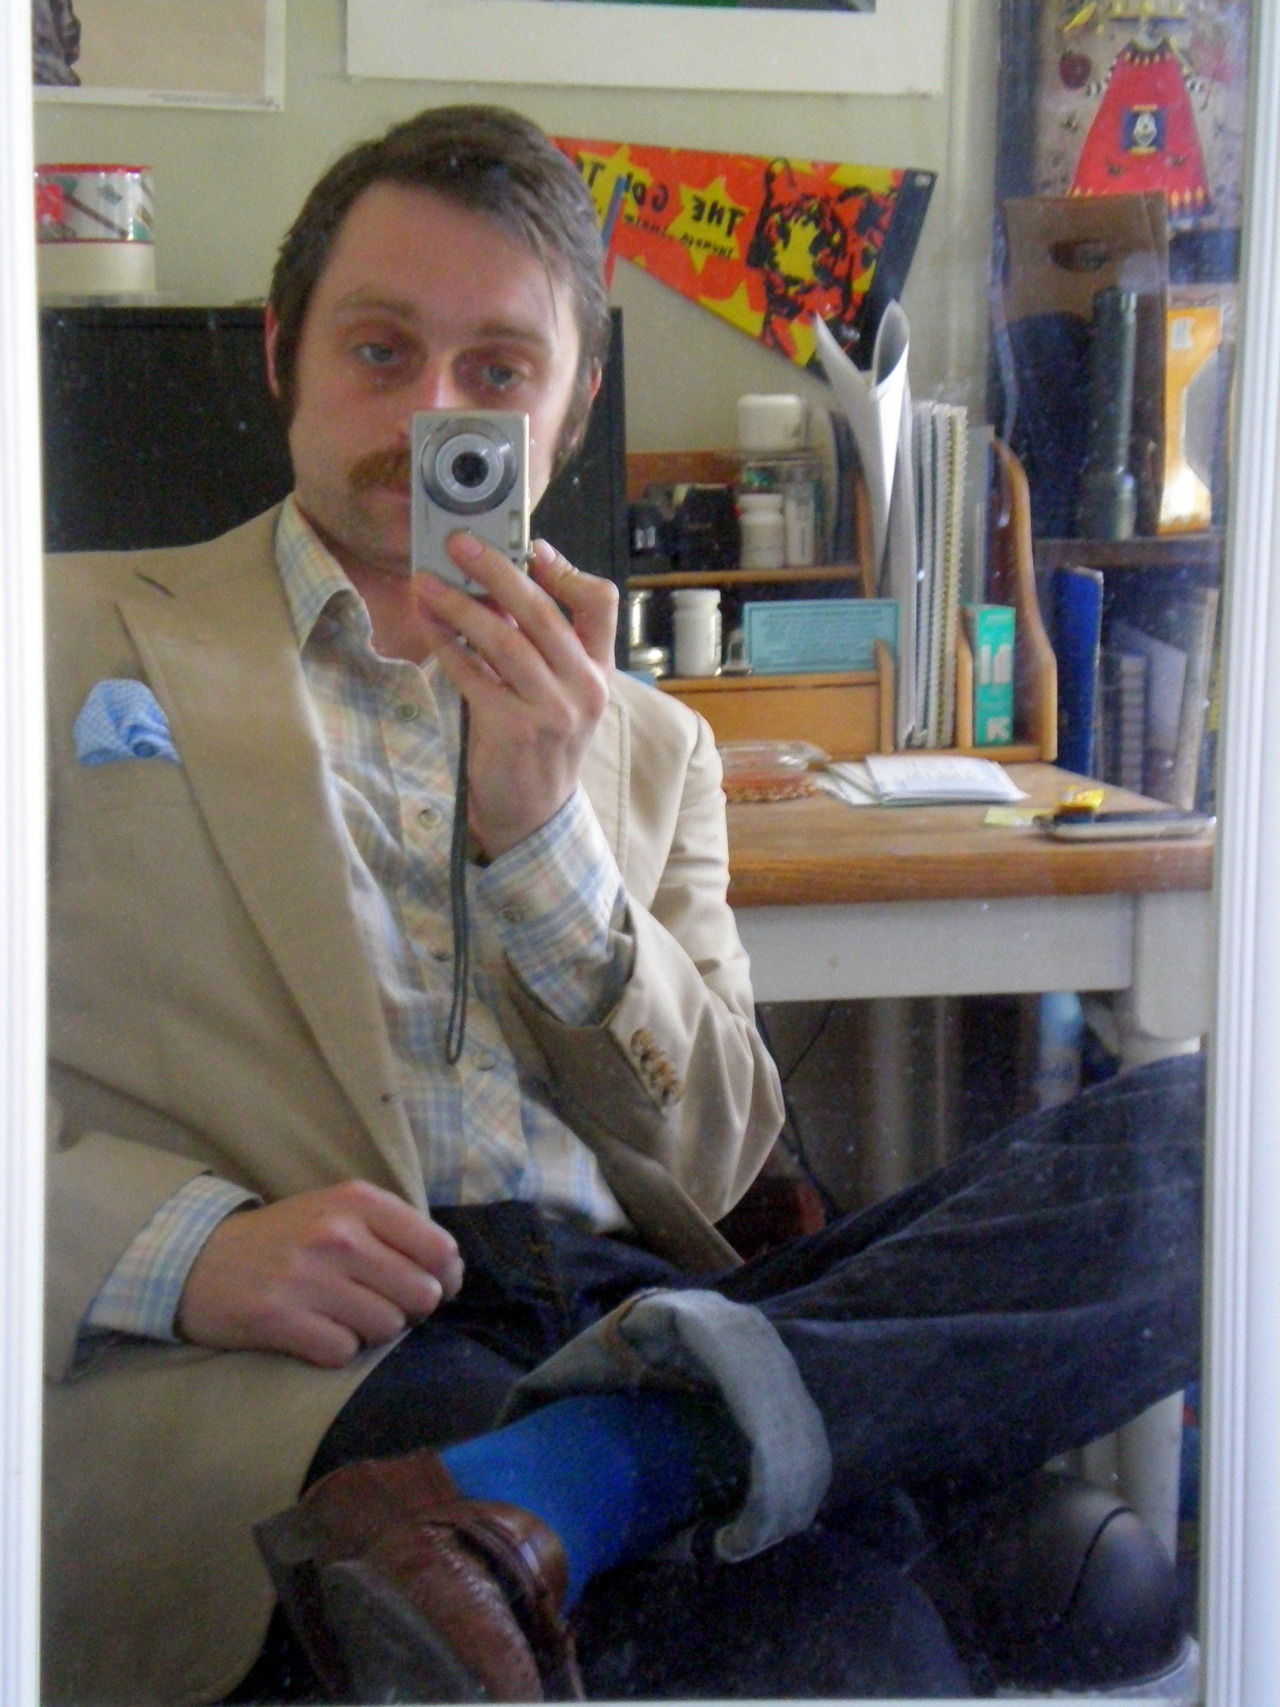 Blogger at Desk with Camera. A Fistful of Style Apr. 2012